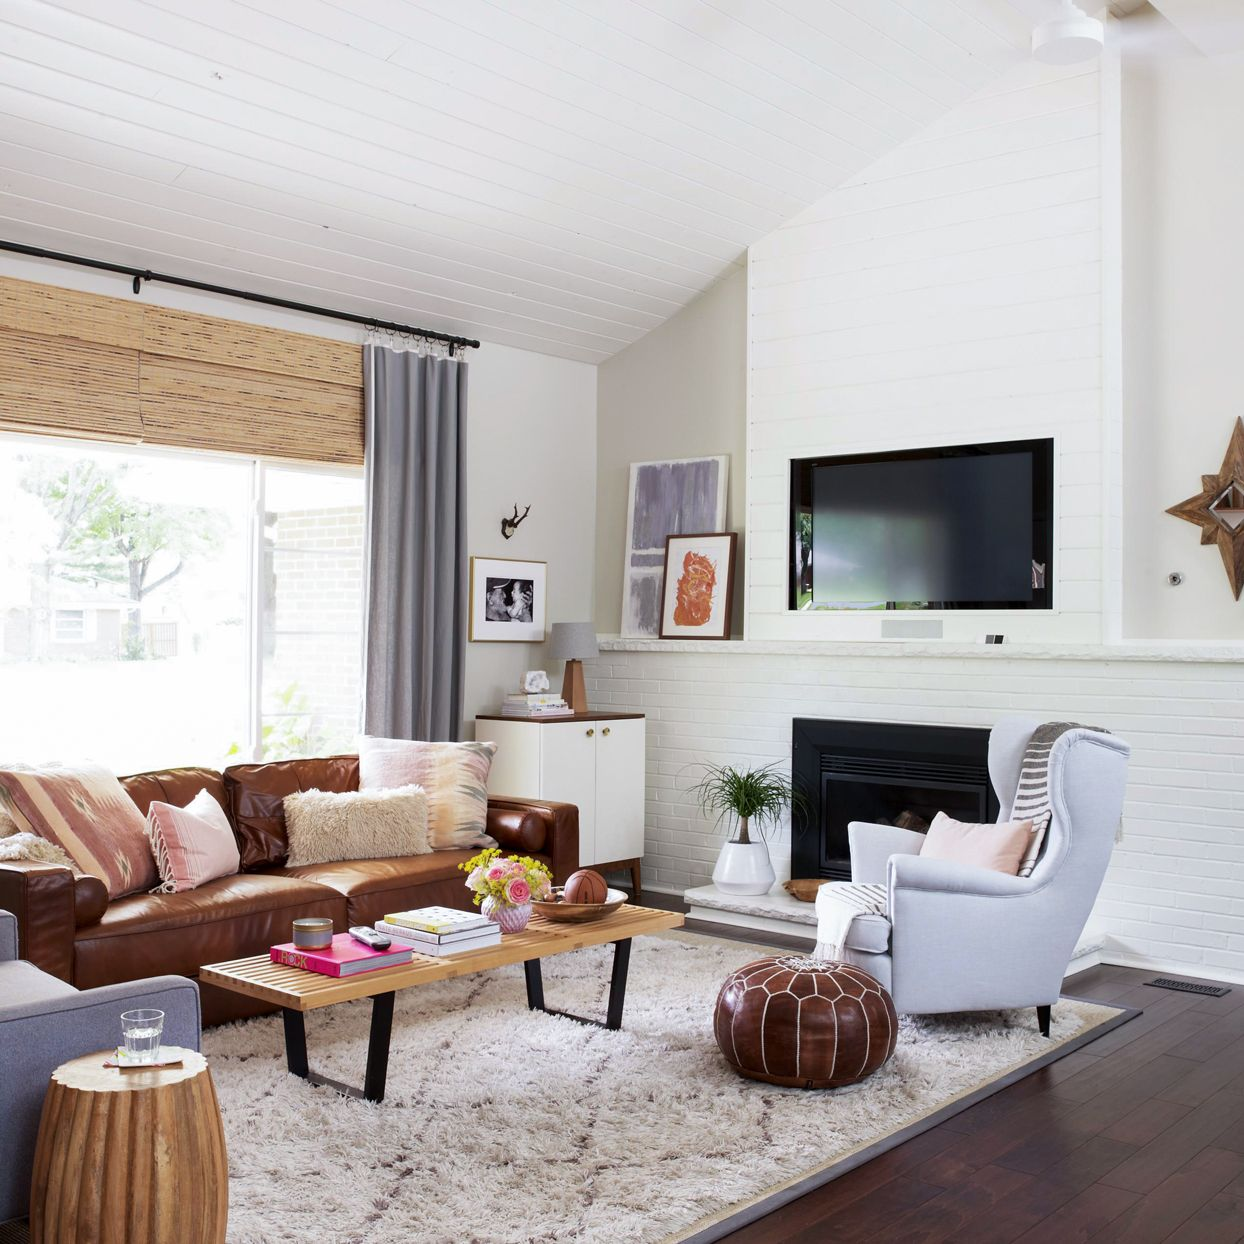 17 Stunning Ways to Decorate with a Brown Sofa in 2020 ...